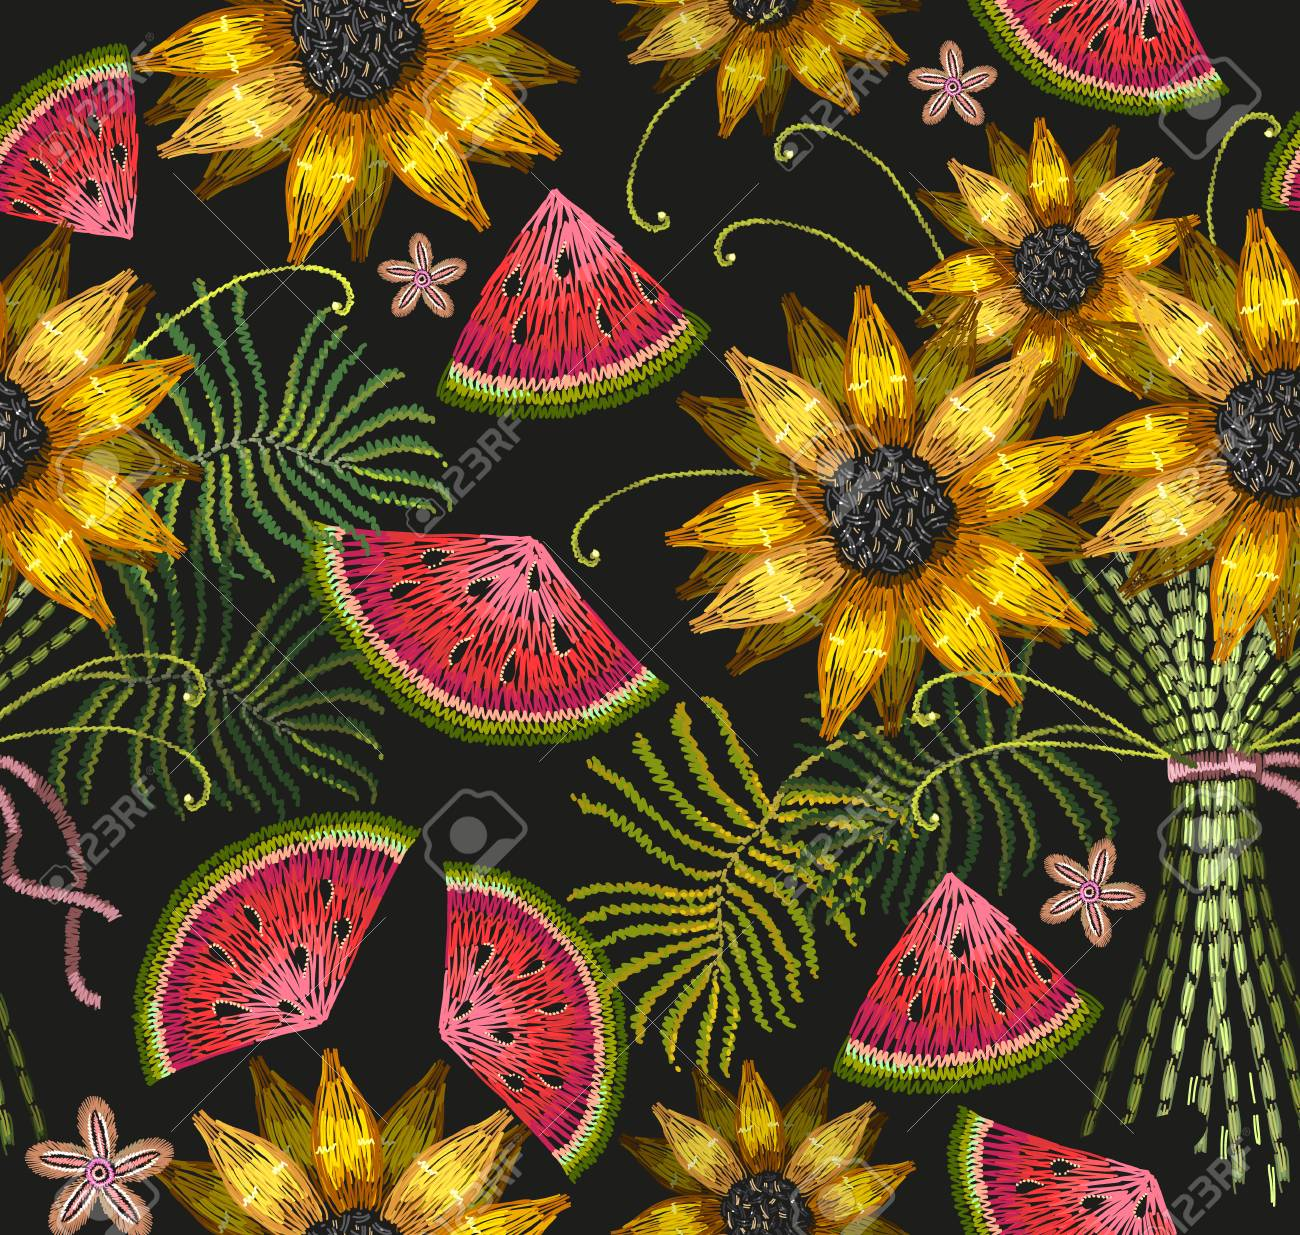 Embroidery Sunflowers And Watermelon Seamless Pattern Classical Bouquet Of Tropical Flowers